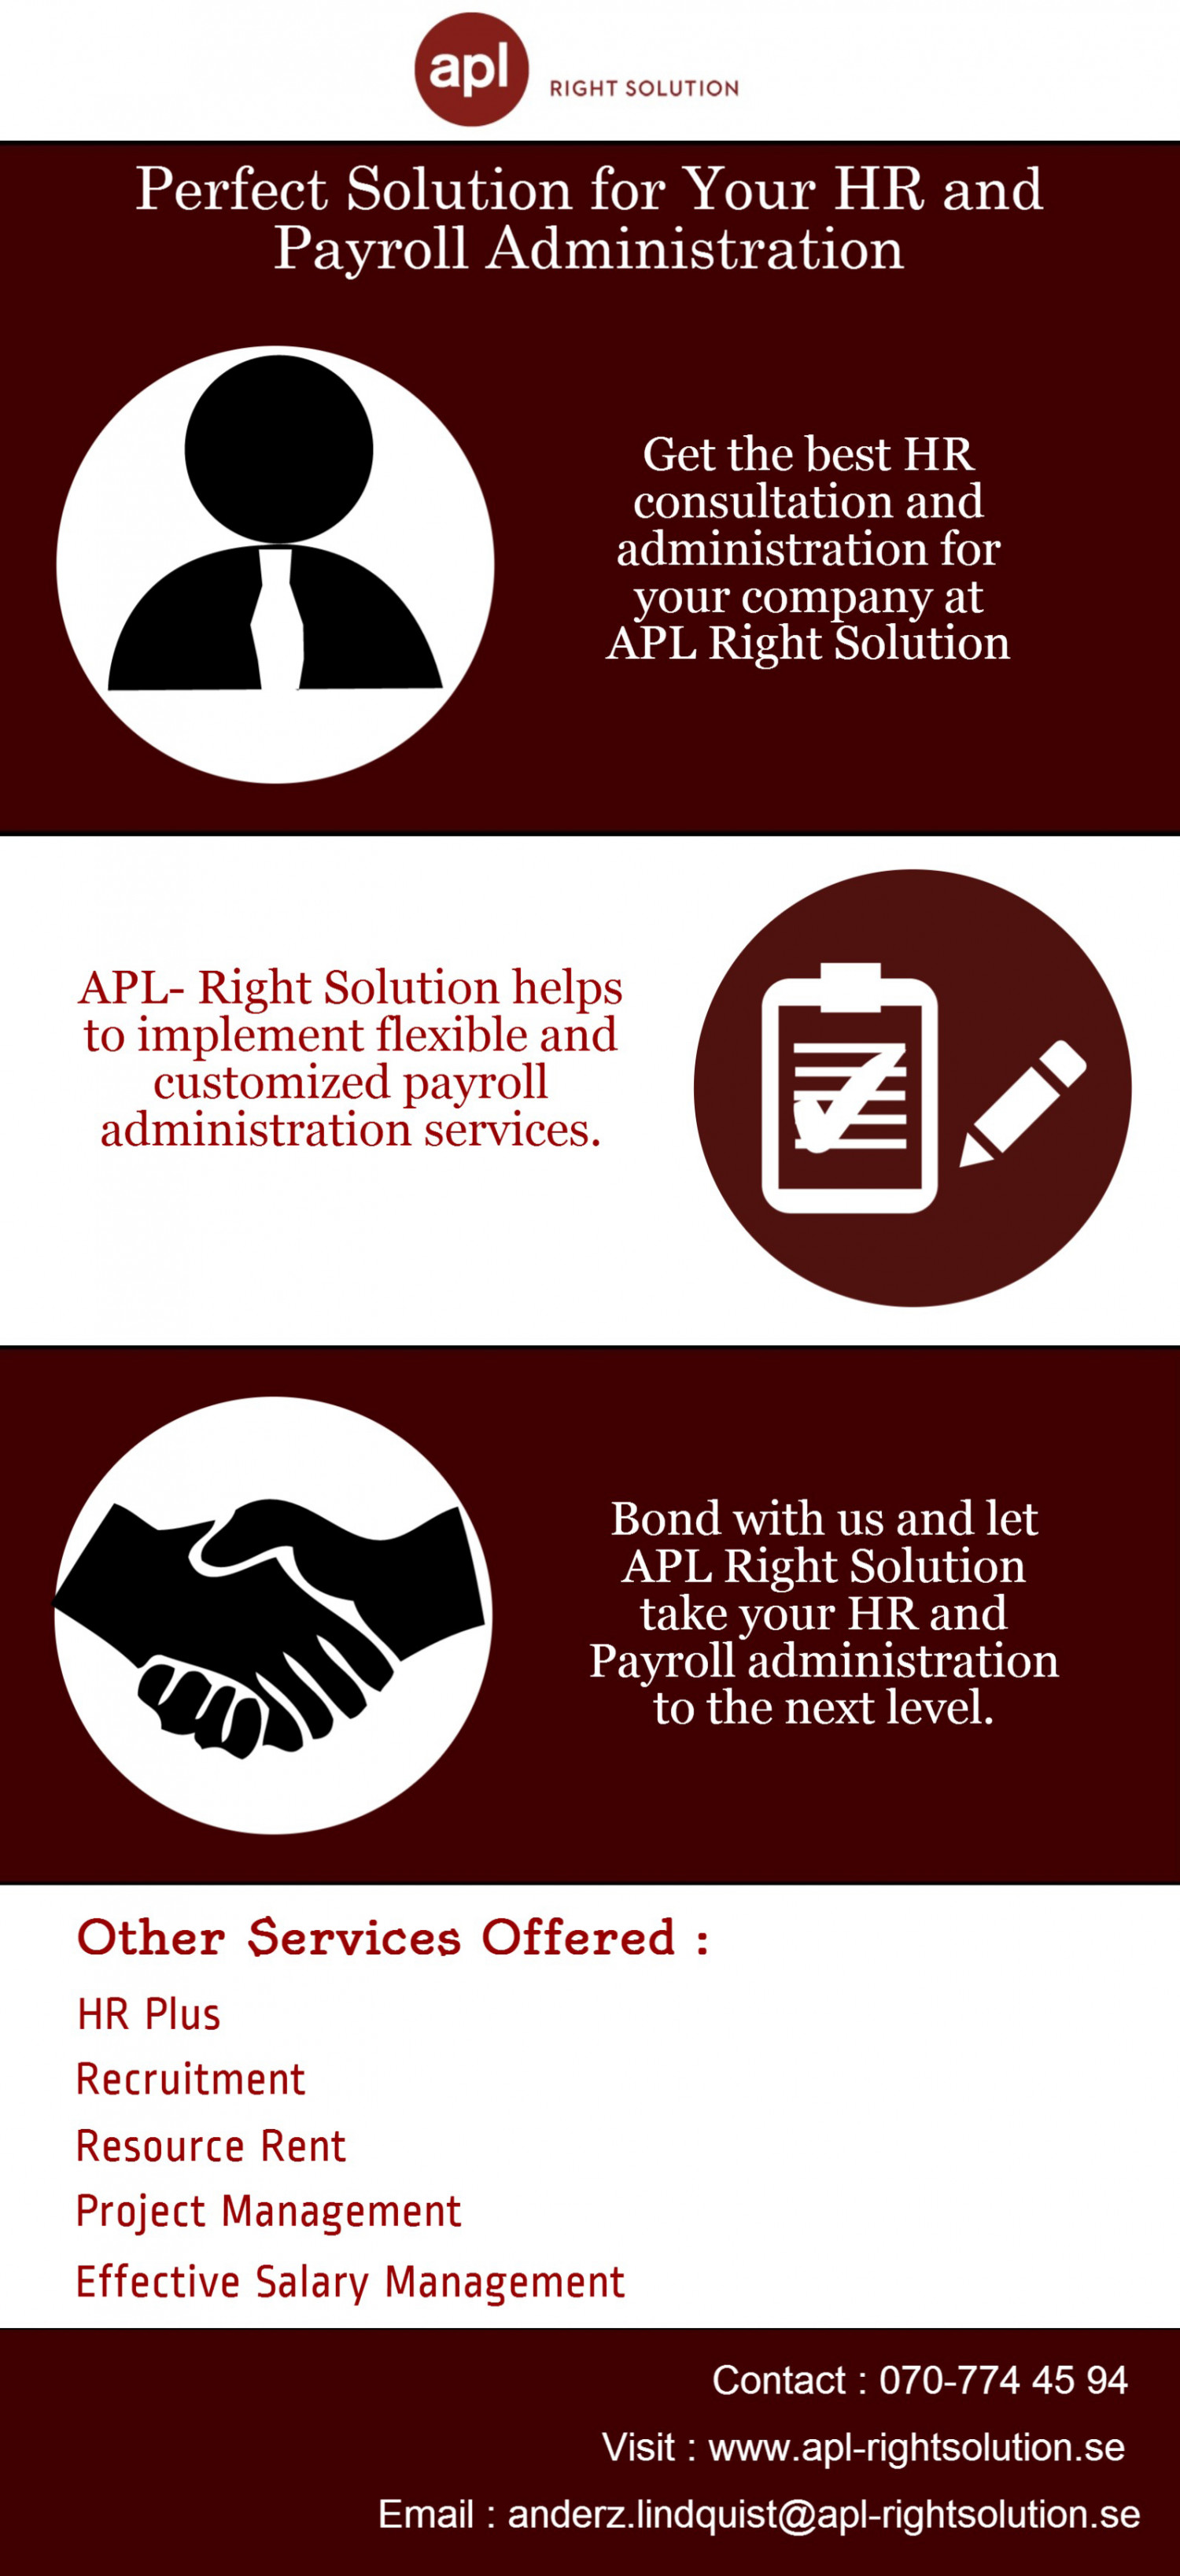 Perfect Solution for your HR and Payroll Administration Infographic